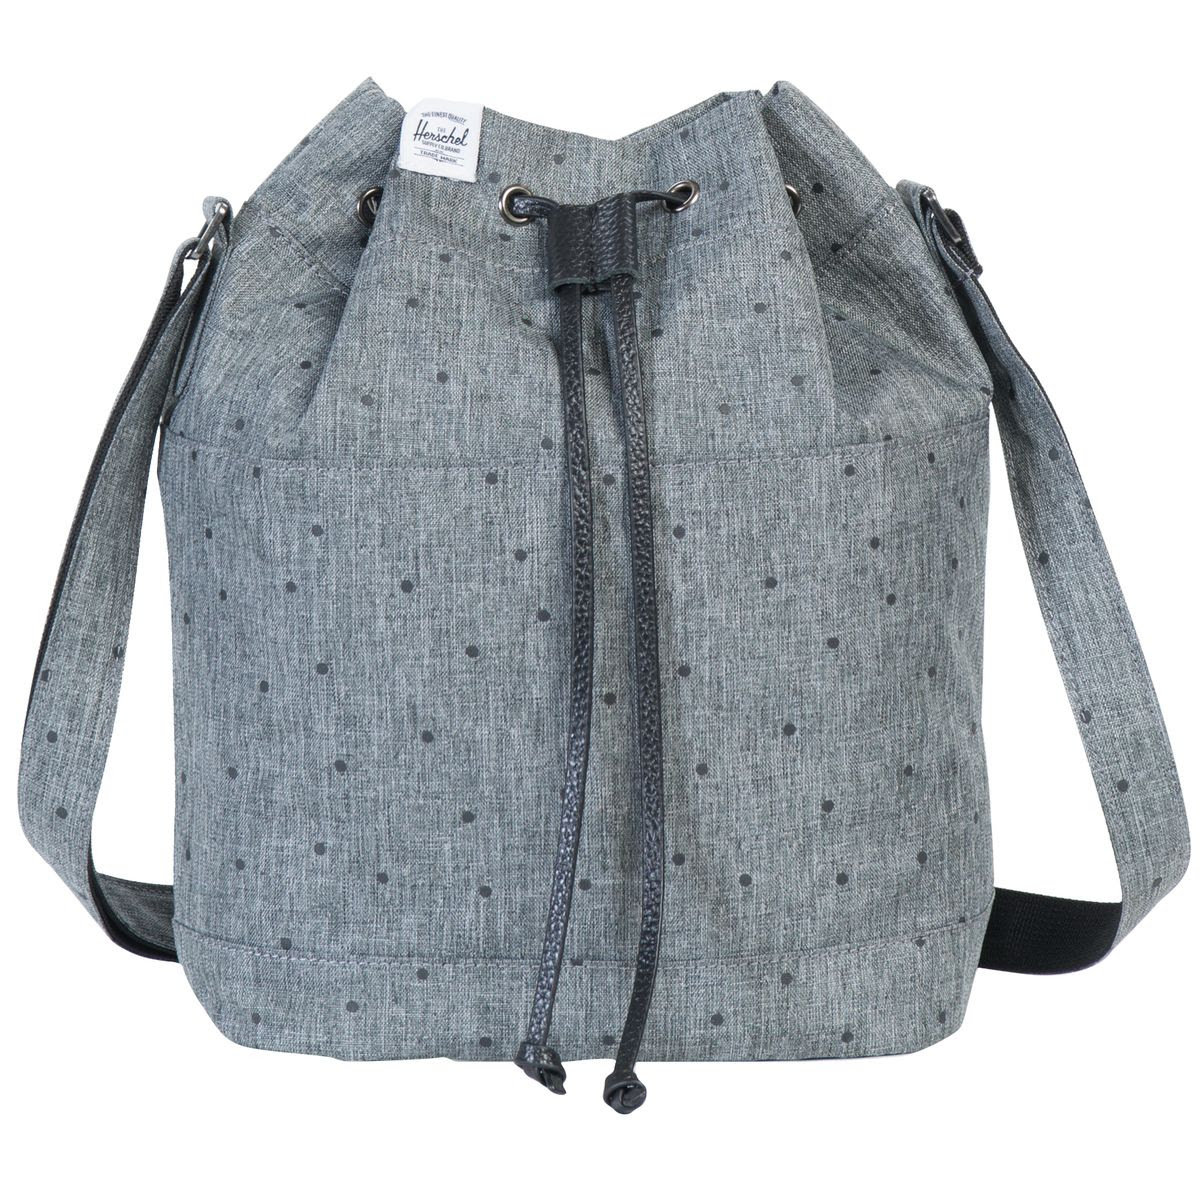 Herschel Supply Carlow Crossbody Bag - Women's Scattered Raven Crosshatch, One Size